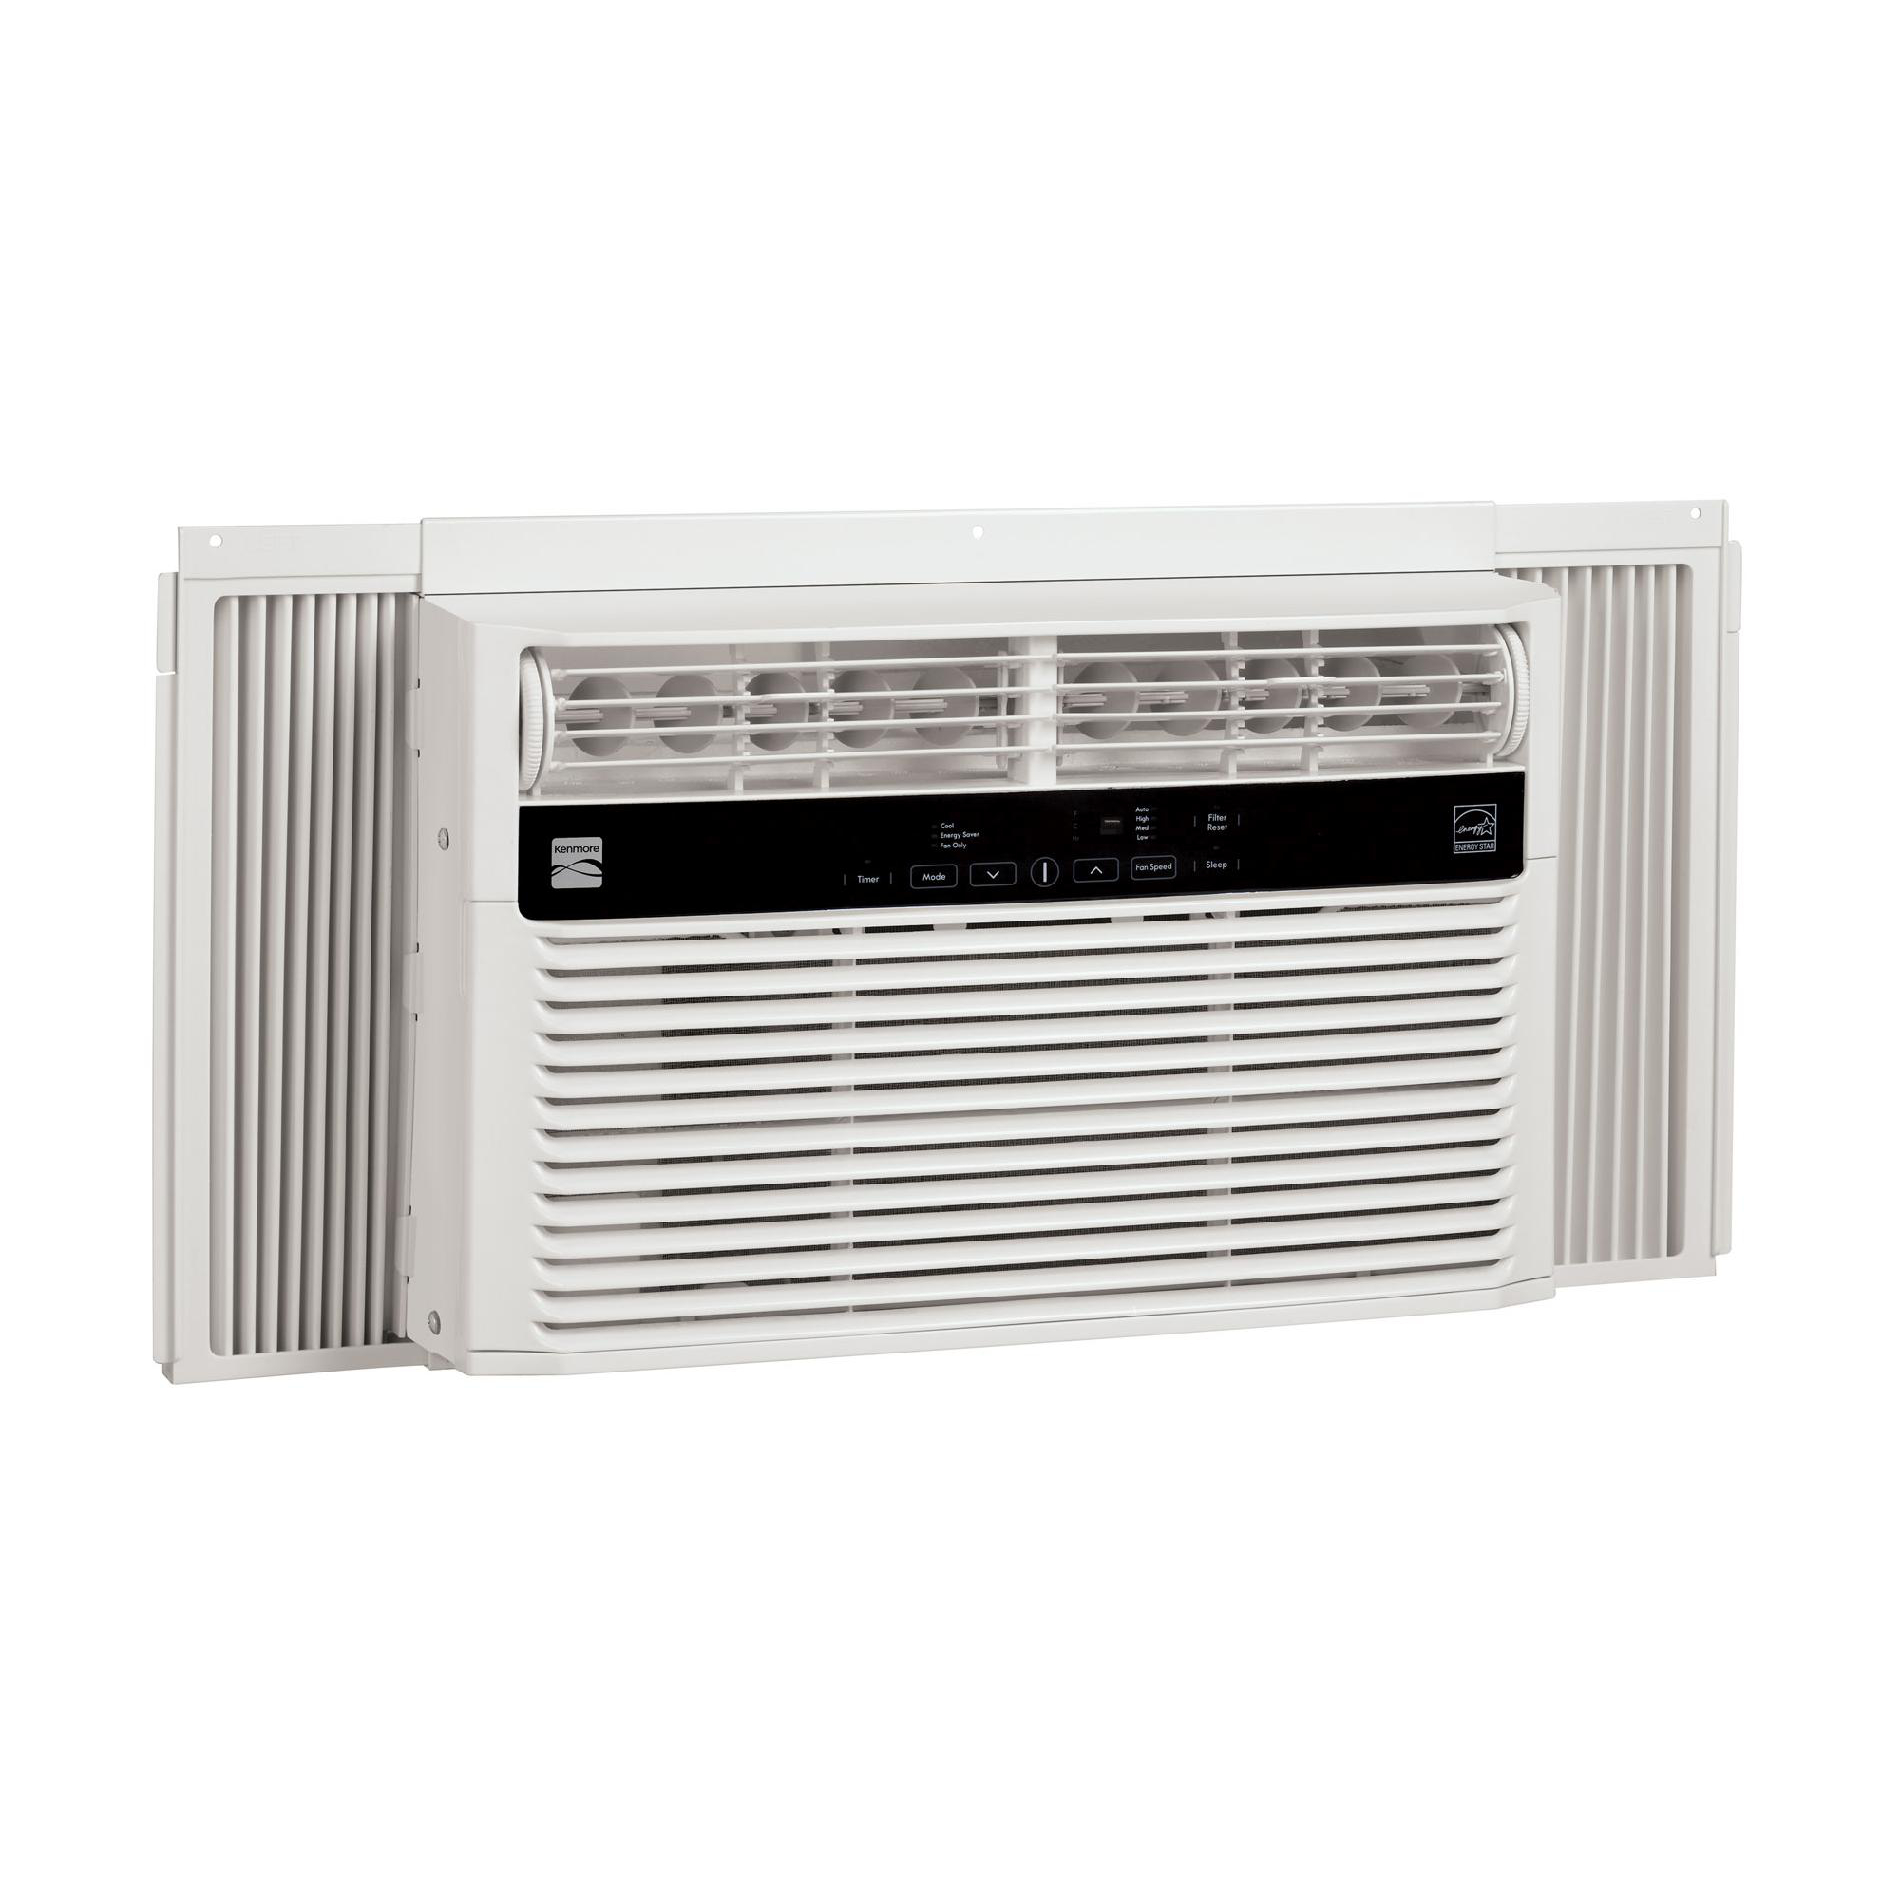 Kenmore 5,200 BTU Room Air Conditioner